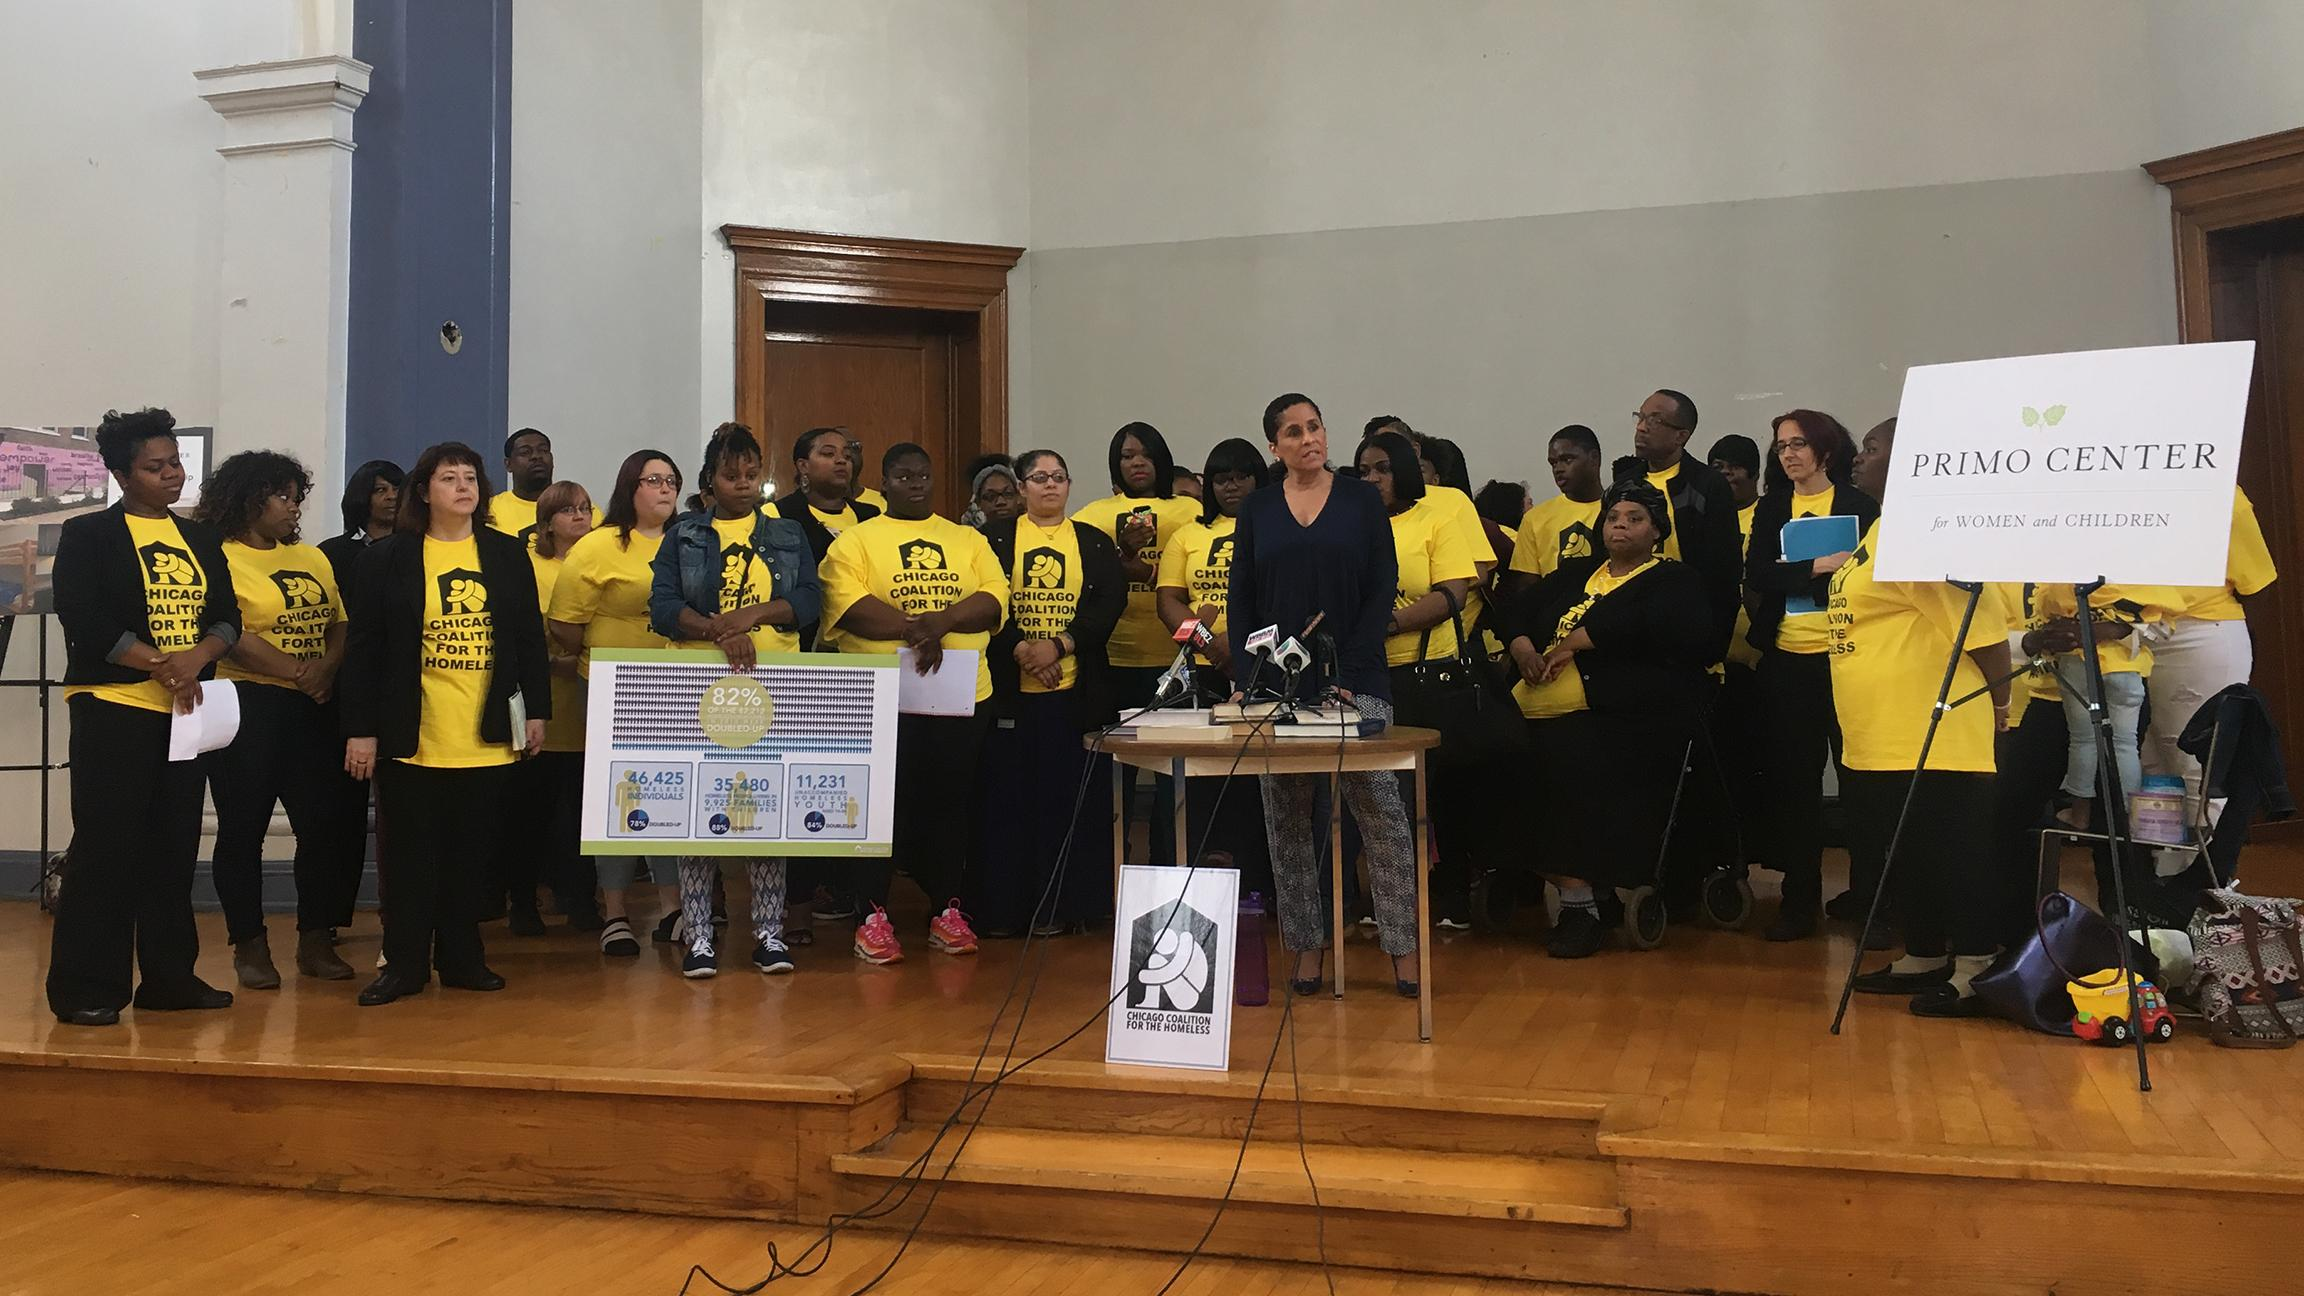 Chicago Department of Family and Support Services Commissioner Lisa Morrison Butler on April 20 announces the city's  million commitment to housing 100 homeless families. (Maya Miller / Chicago Tonight)